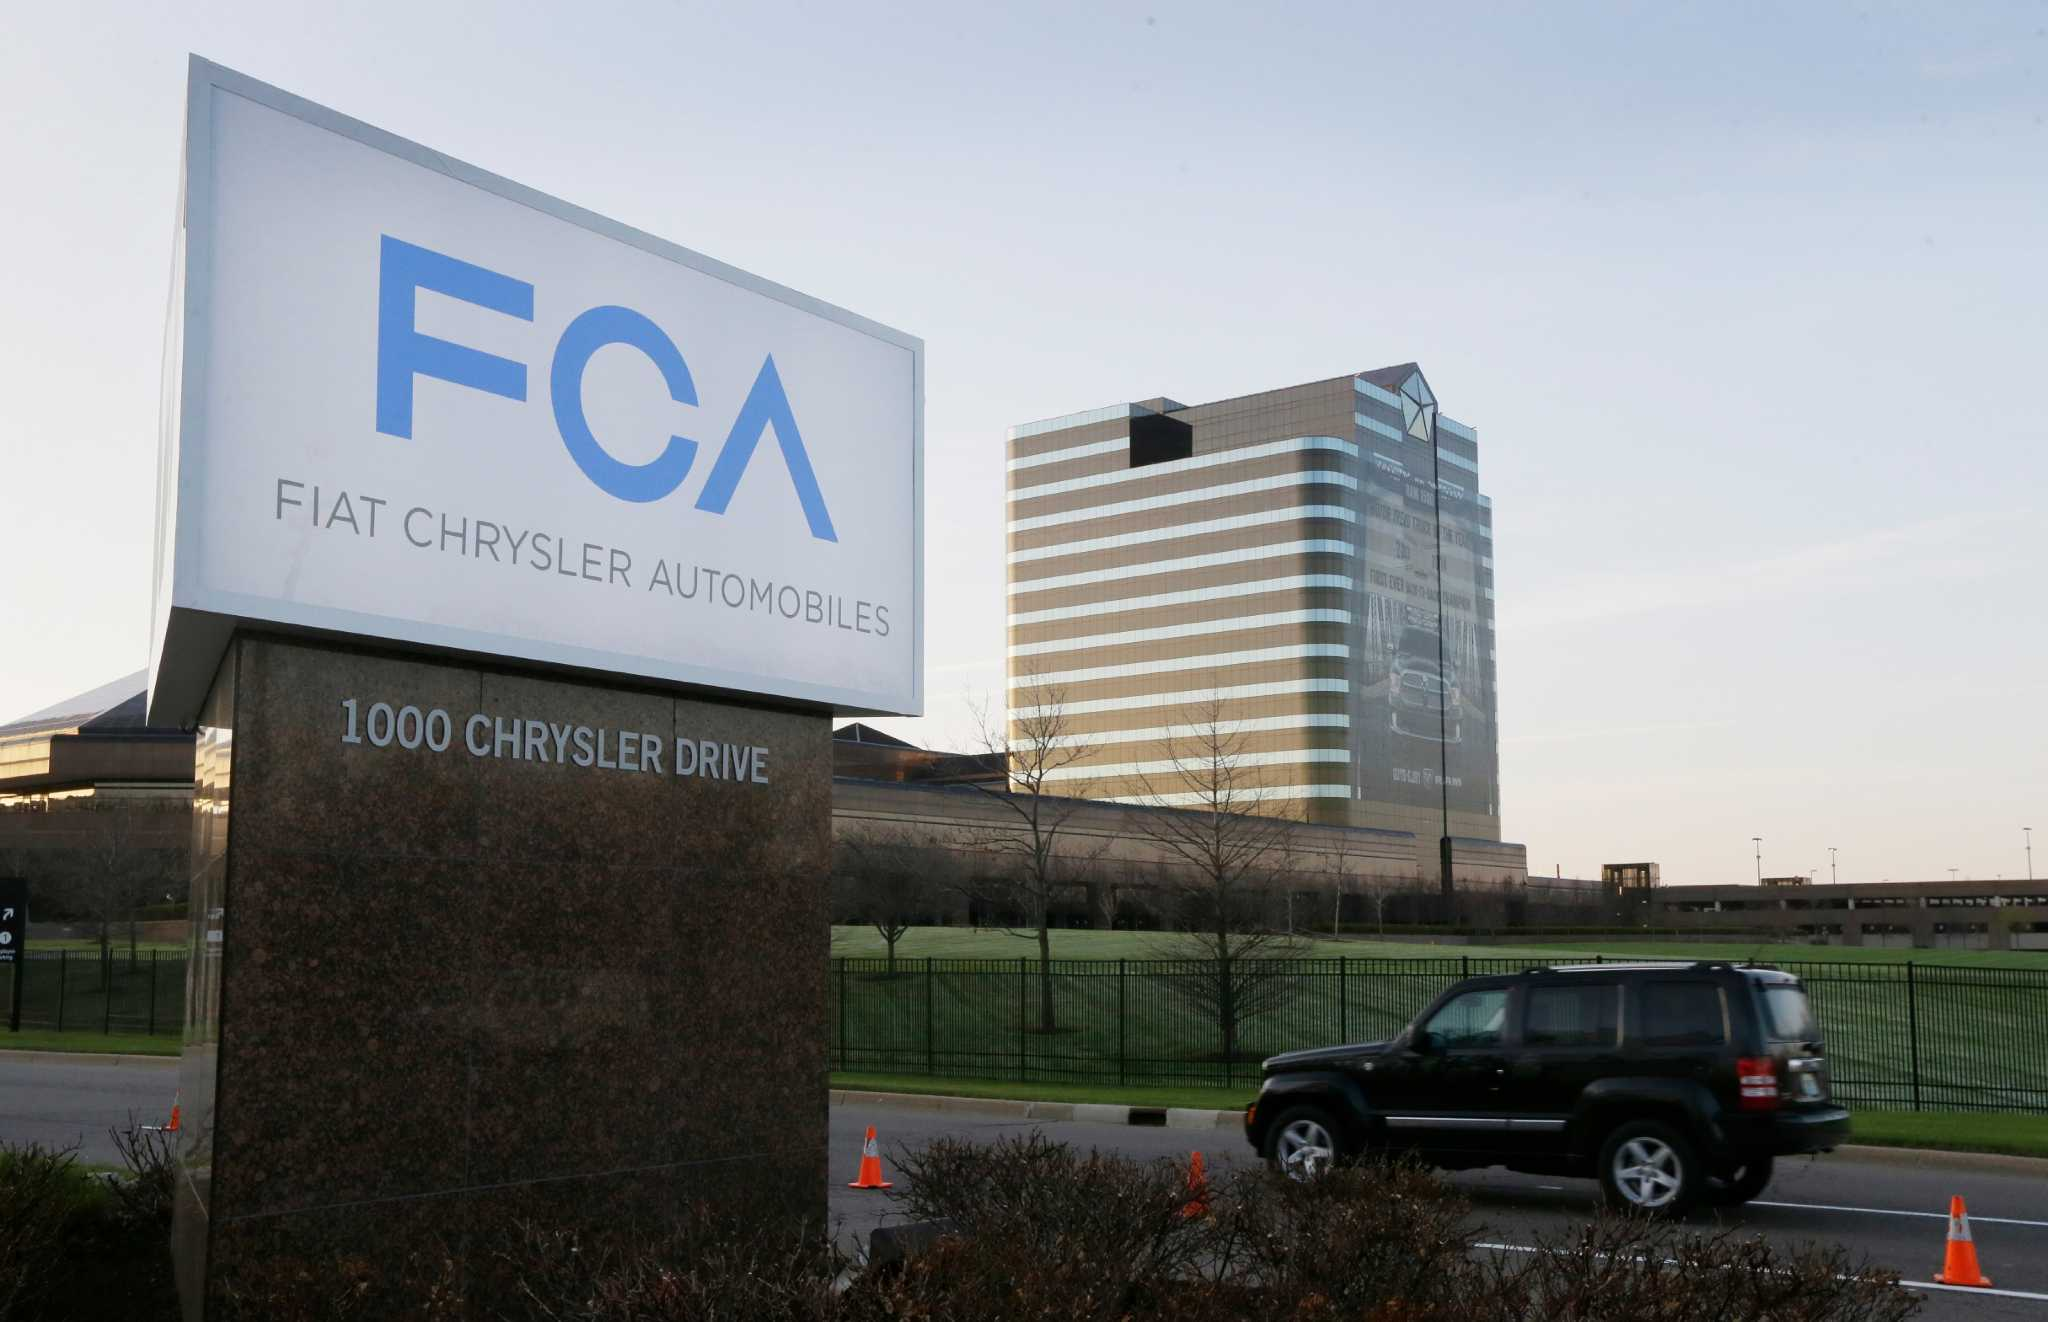 Fiat Chrysler says it's revised 5 years of its sales figures - Houston Chronicle